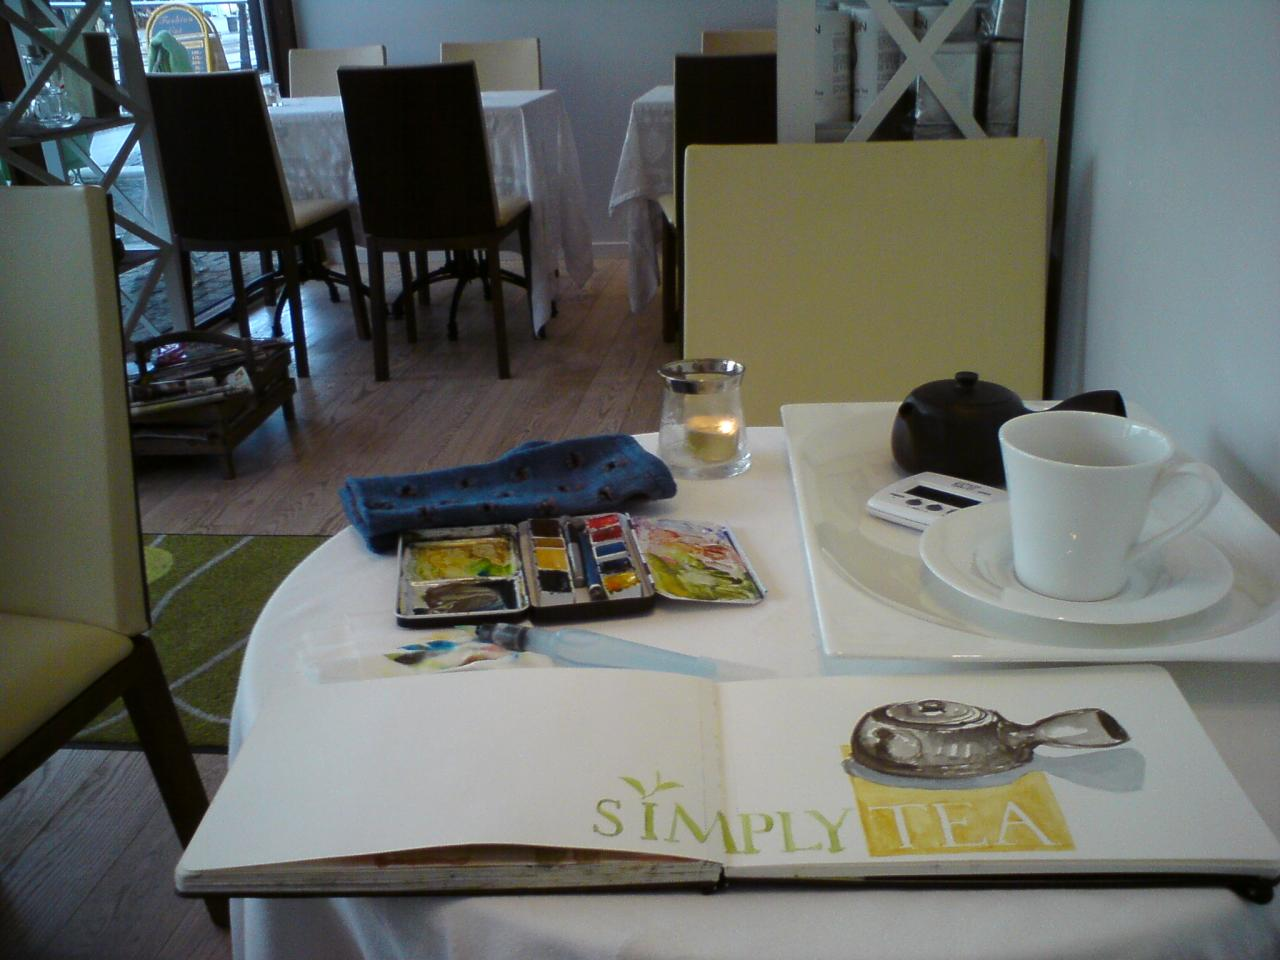 sketchbreak at café Simply Tea